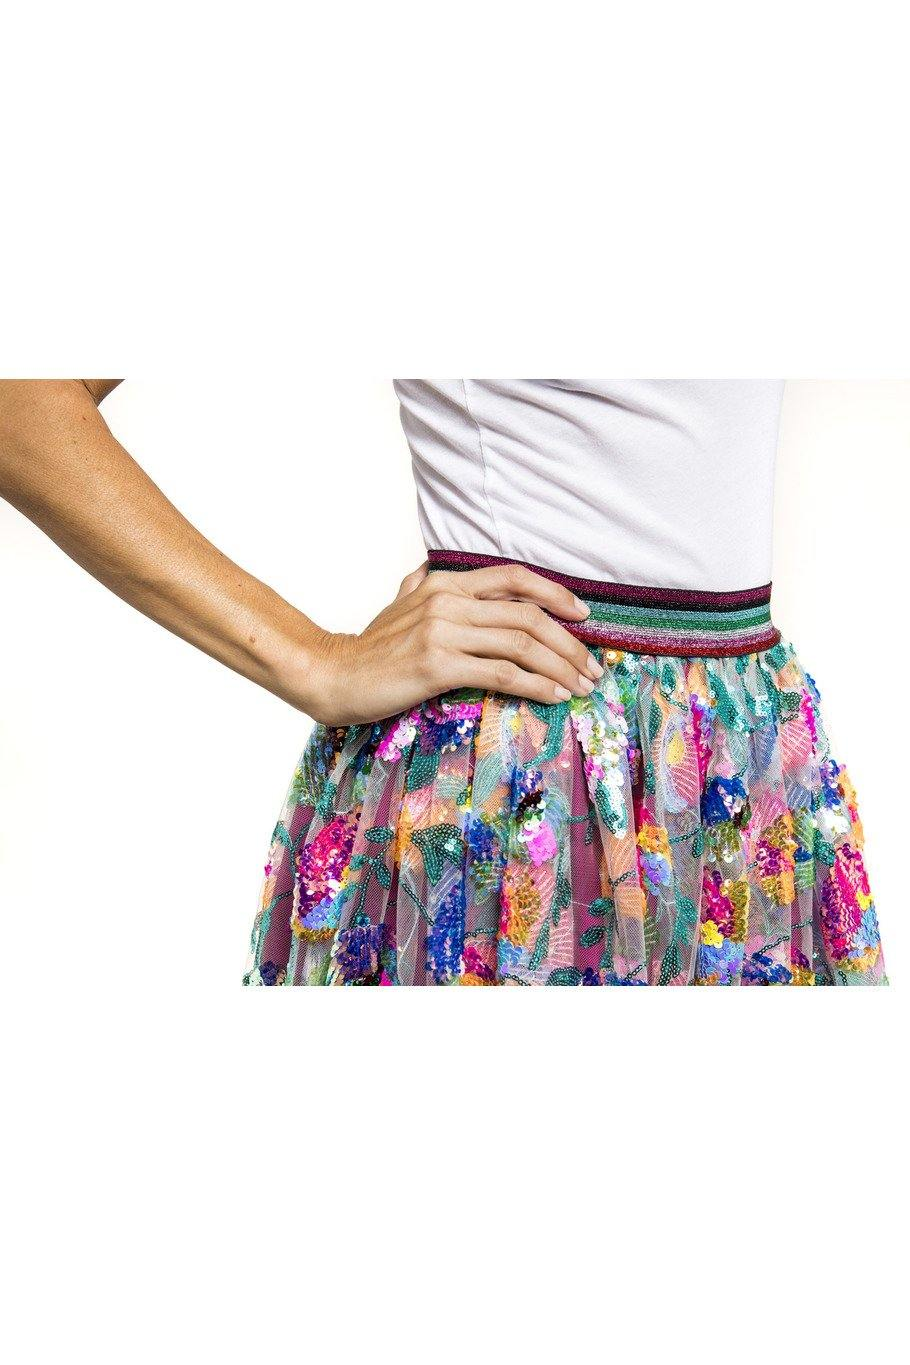 The Talulah Skirt